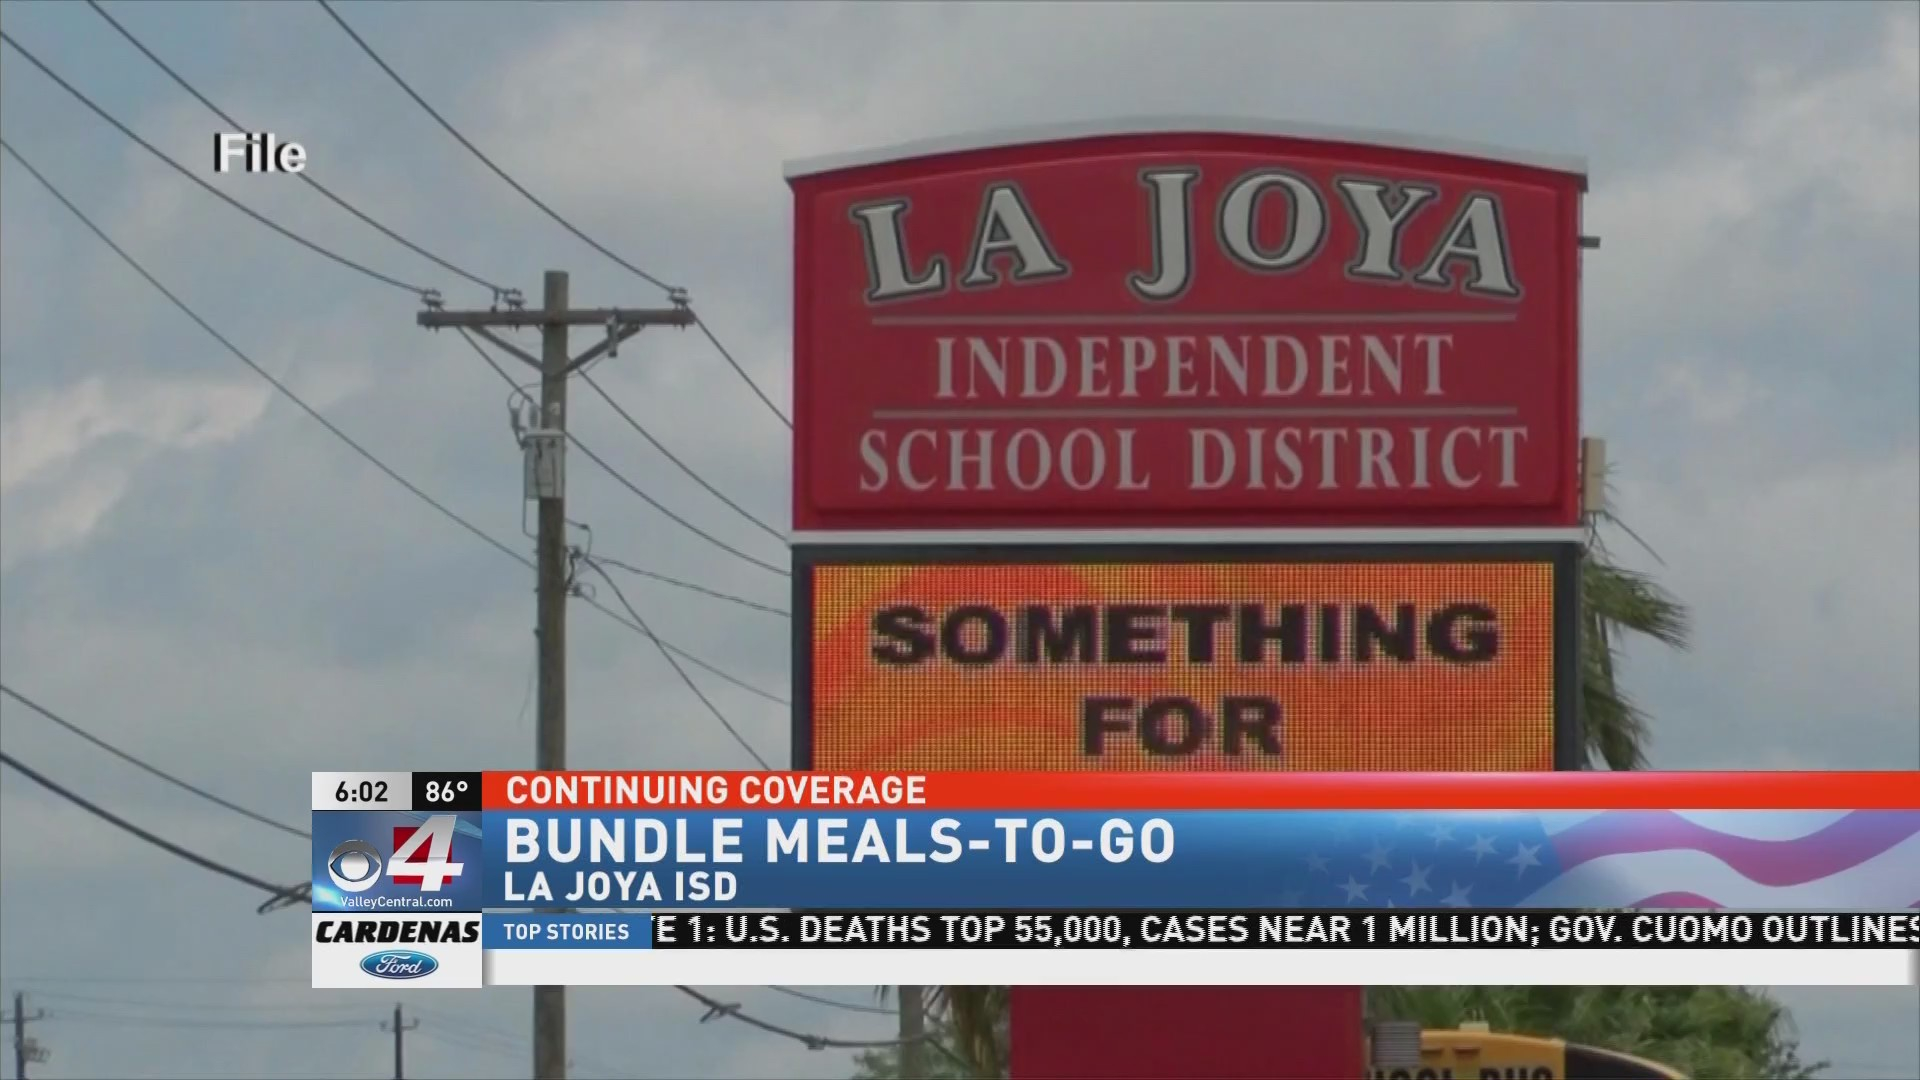 La Joya Isd Providing Meals To Go | Kveo Tv In La Joya Independent School District Calendar